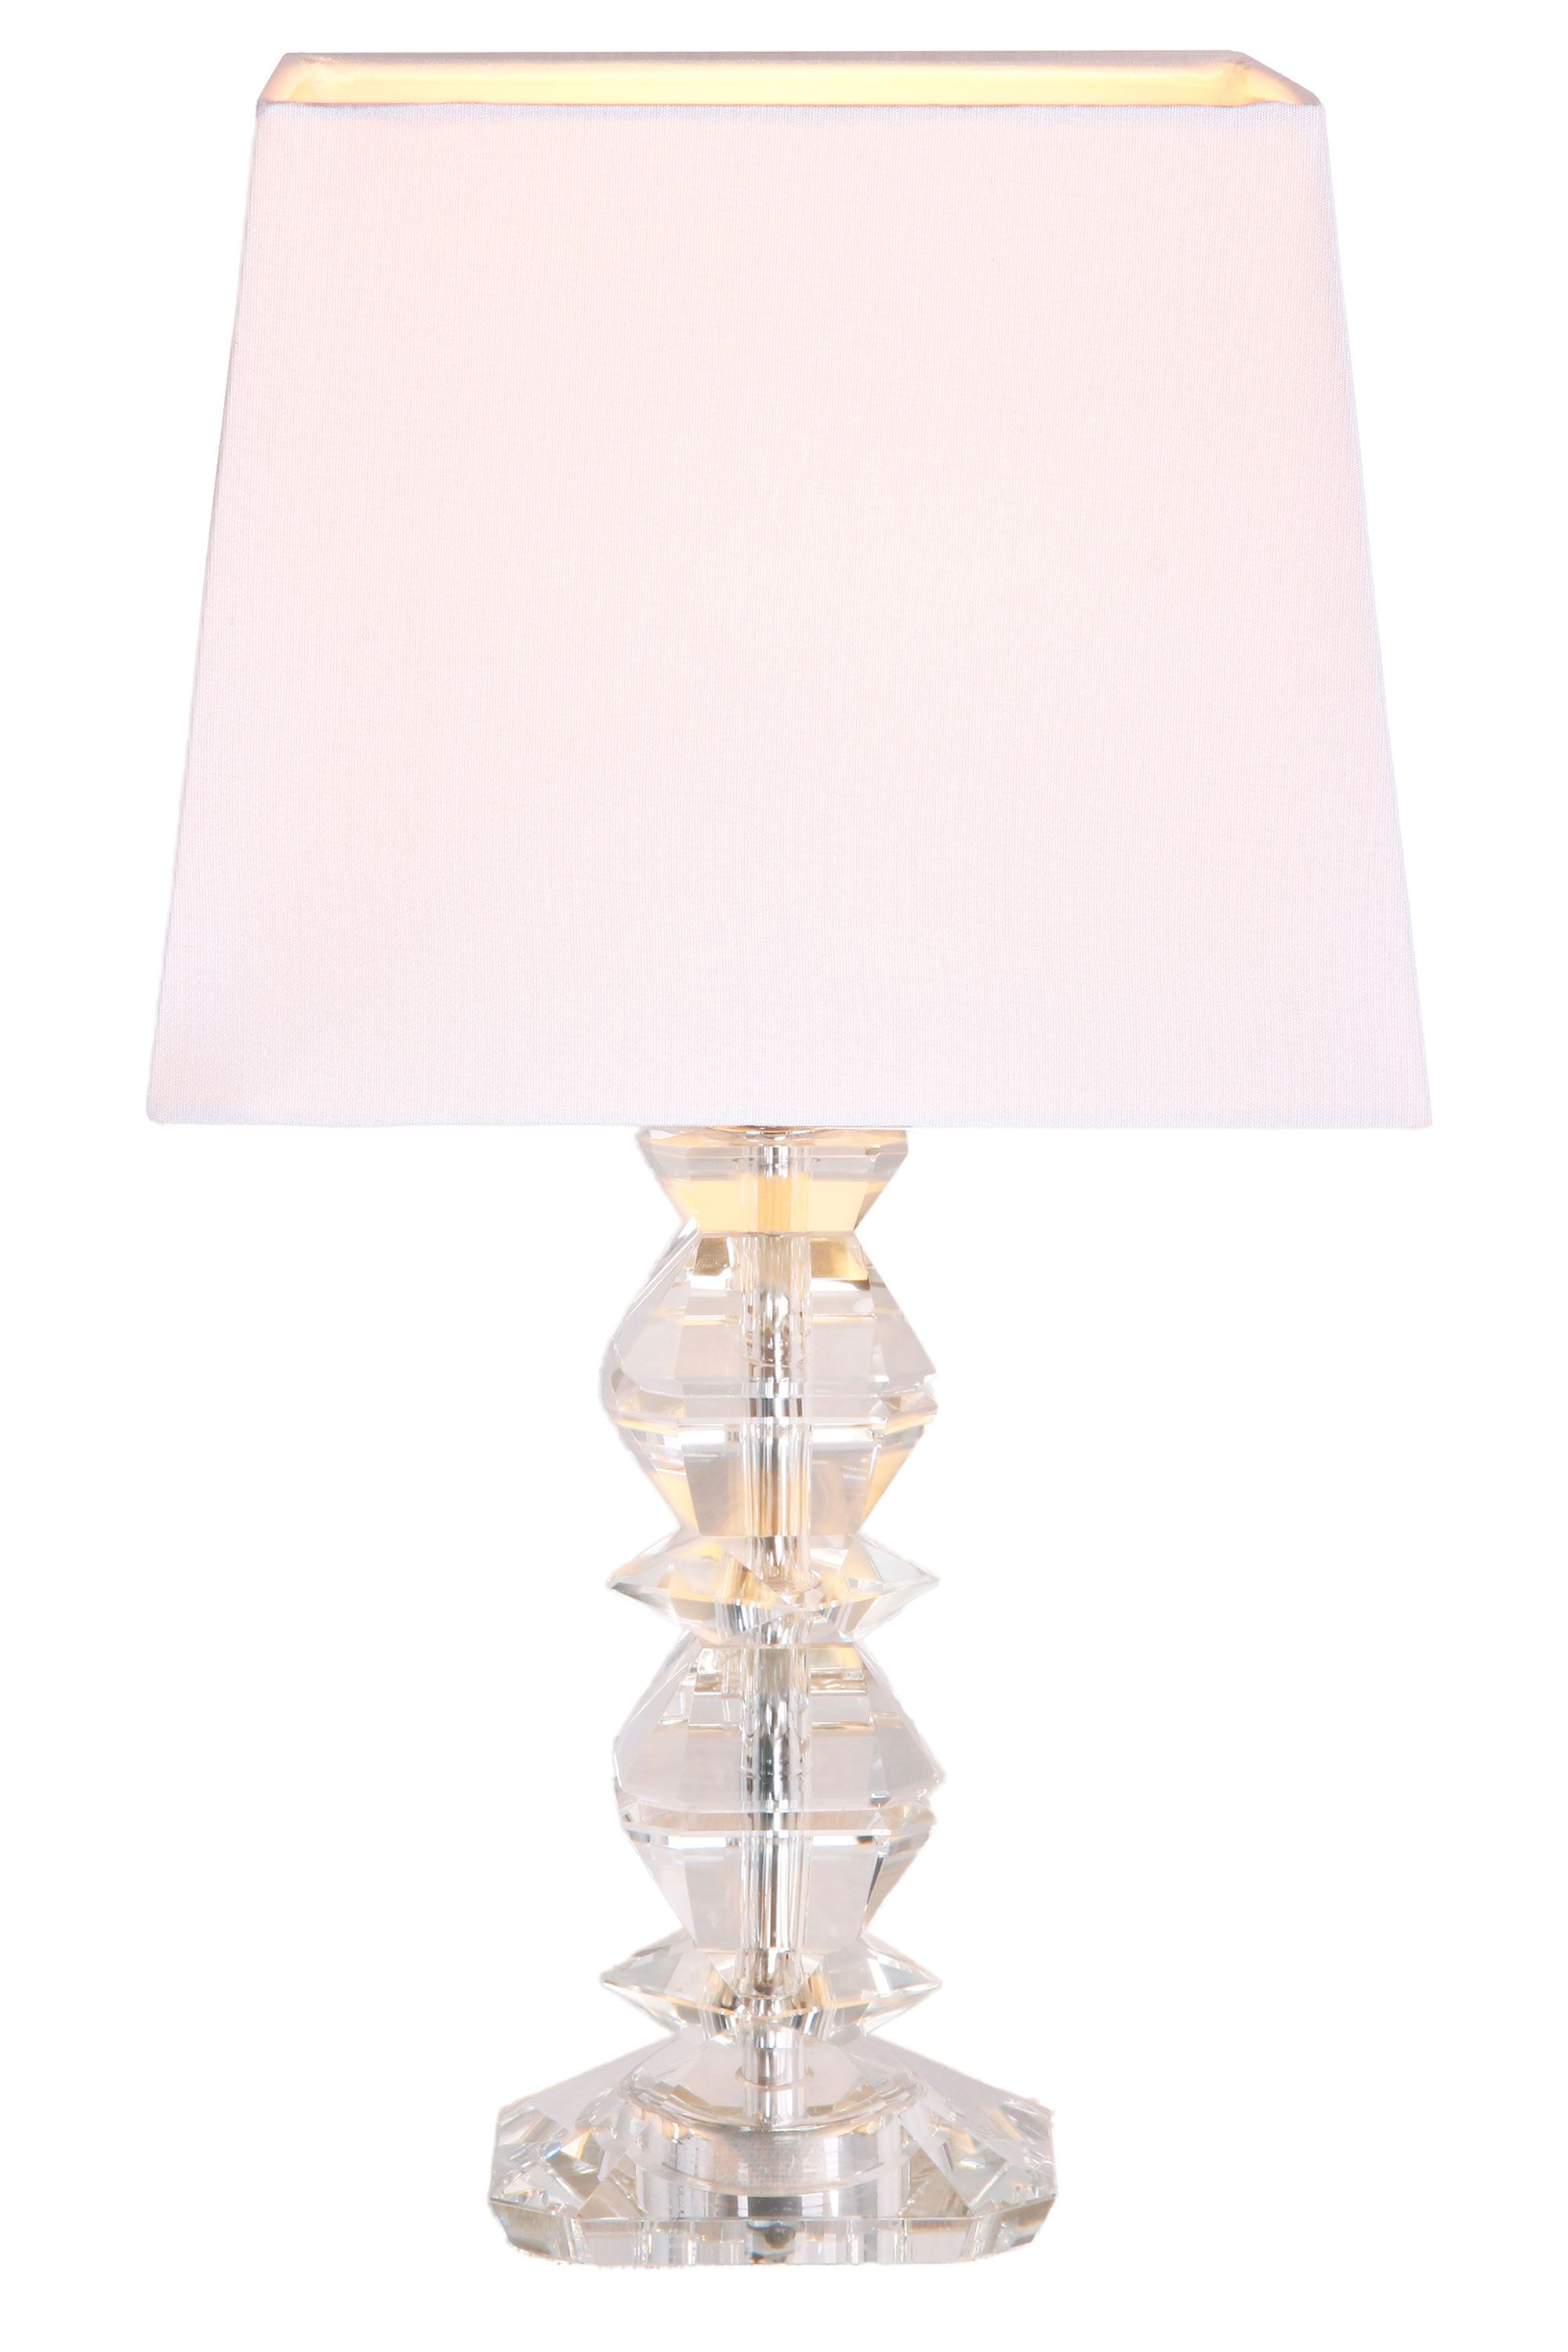 Small Trevena Table Lamp Bhs Lamp Crystal Table Lamps